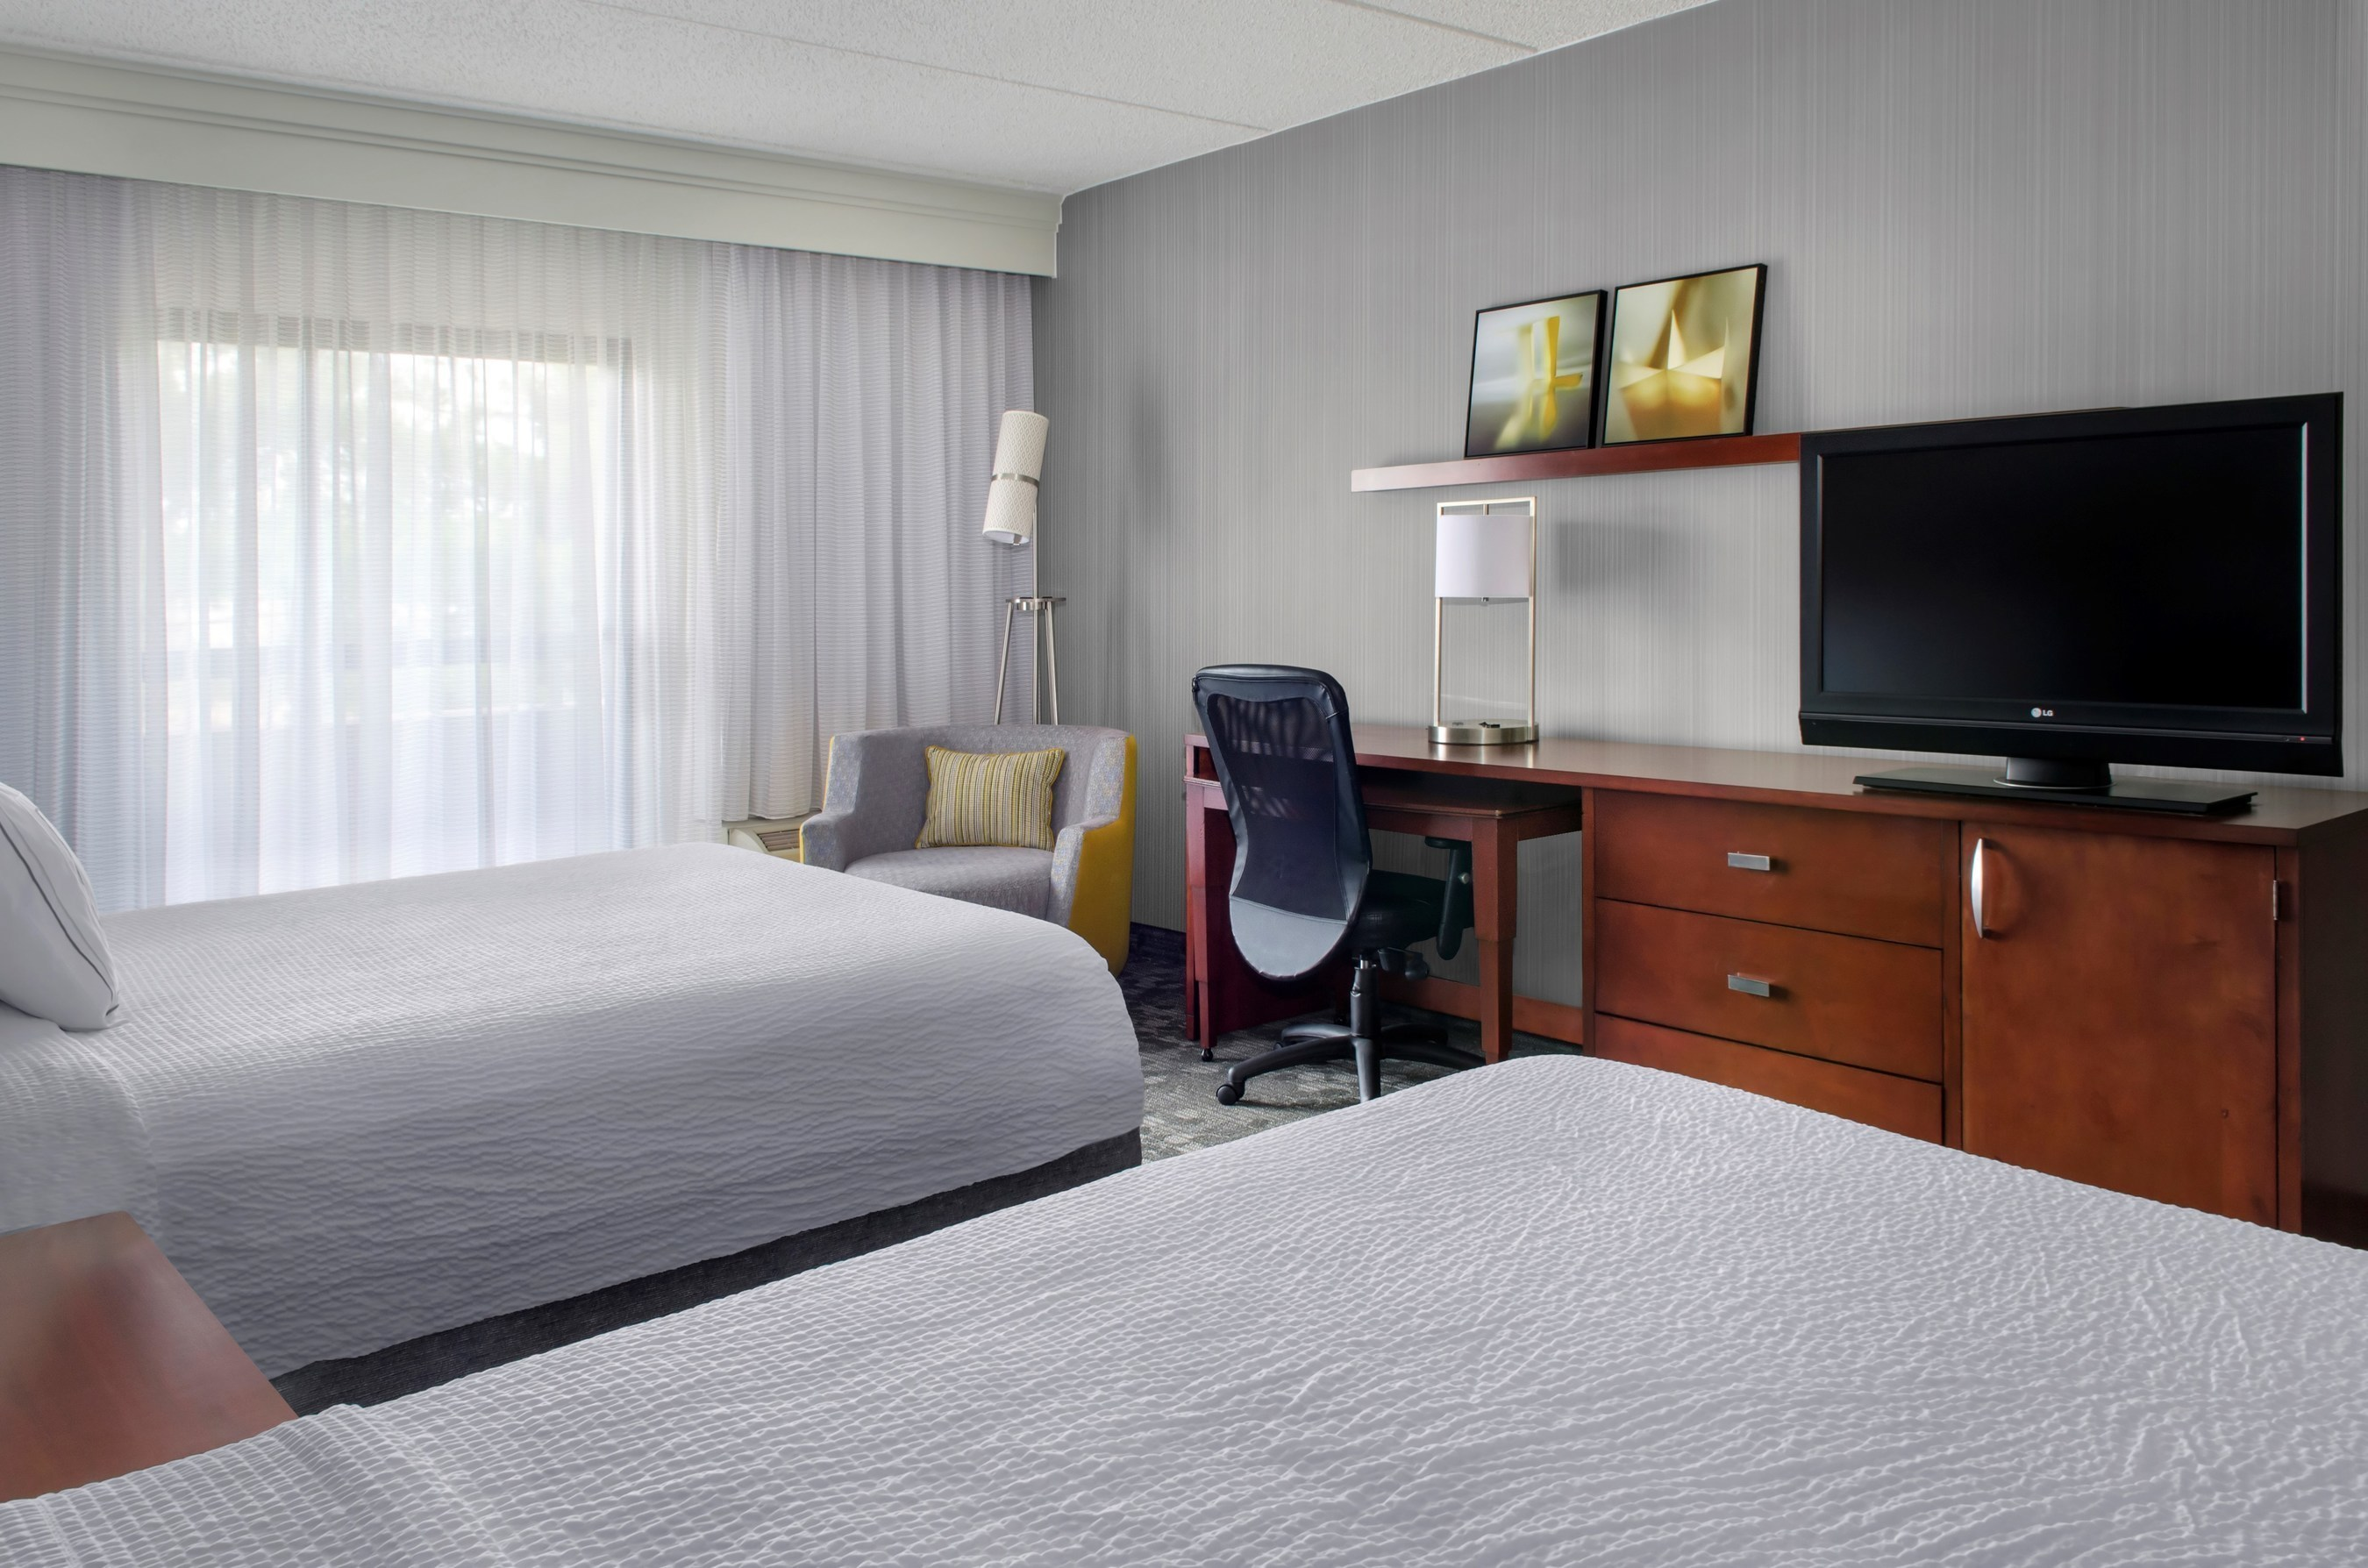 Courtyard Rye has completed a multi-million dollar renovation to its guest rooms, lobby, fitness center and on-site bistro. For information, visit www.CourtyardWhitePlainsRye.com or call 1-914-921-1110.